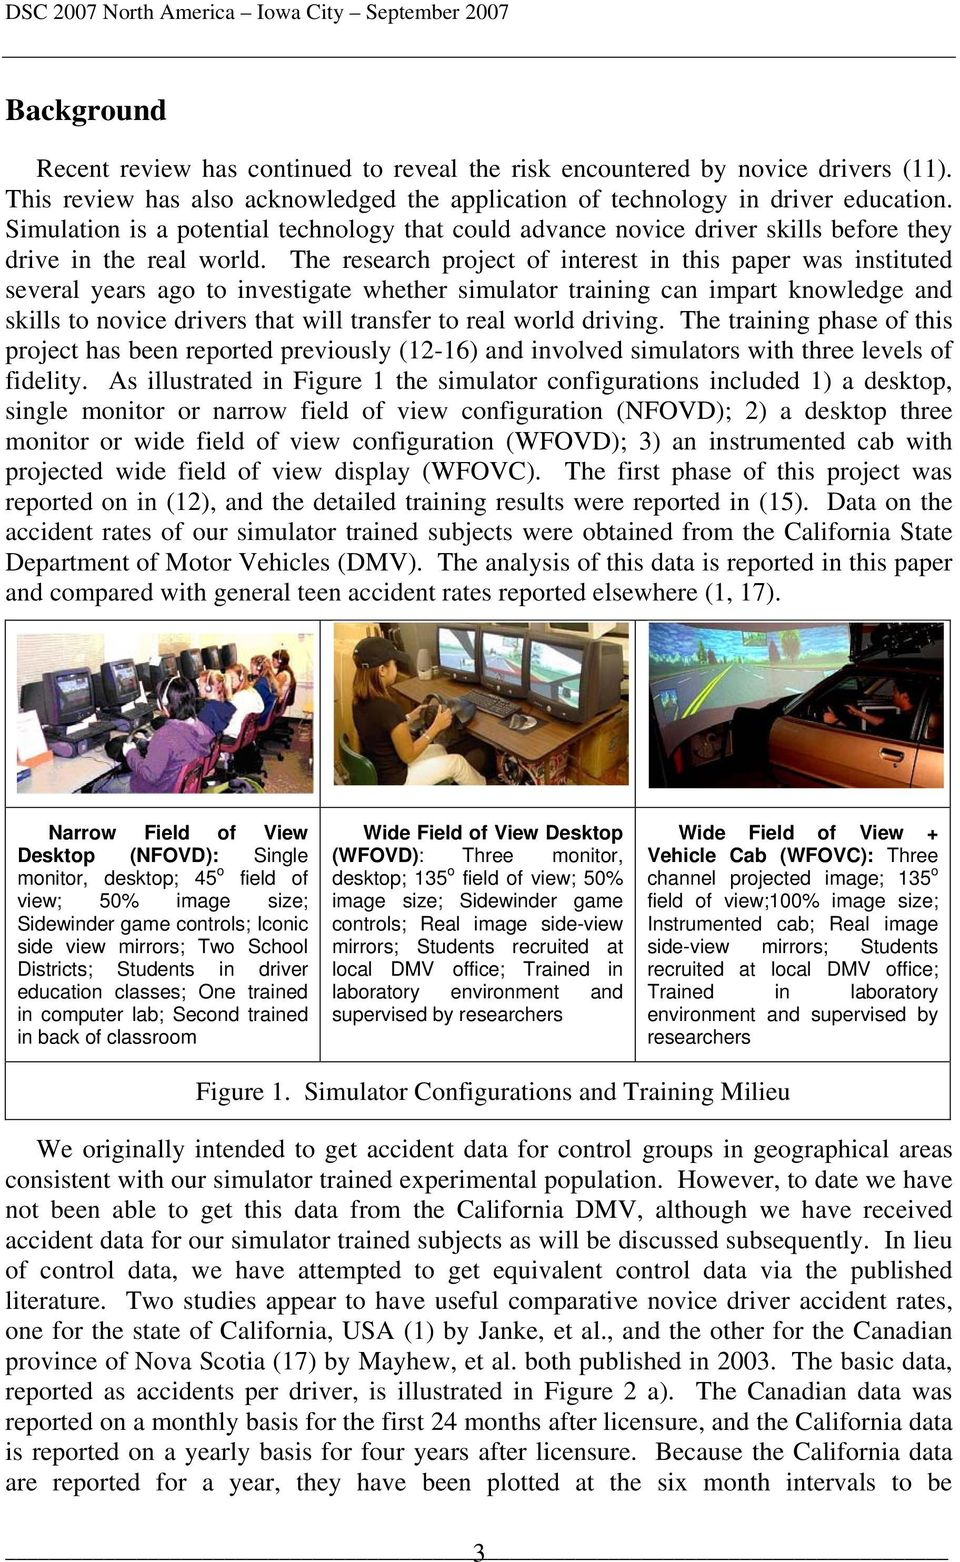 The Effect of Driving Simulator Fidelity on Training